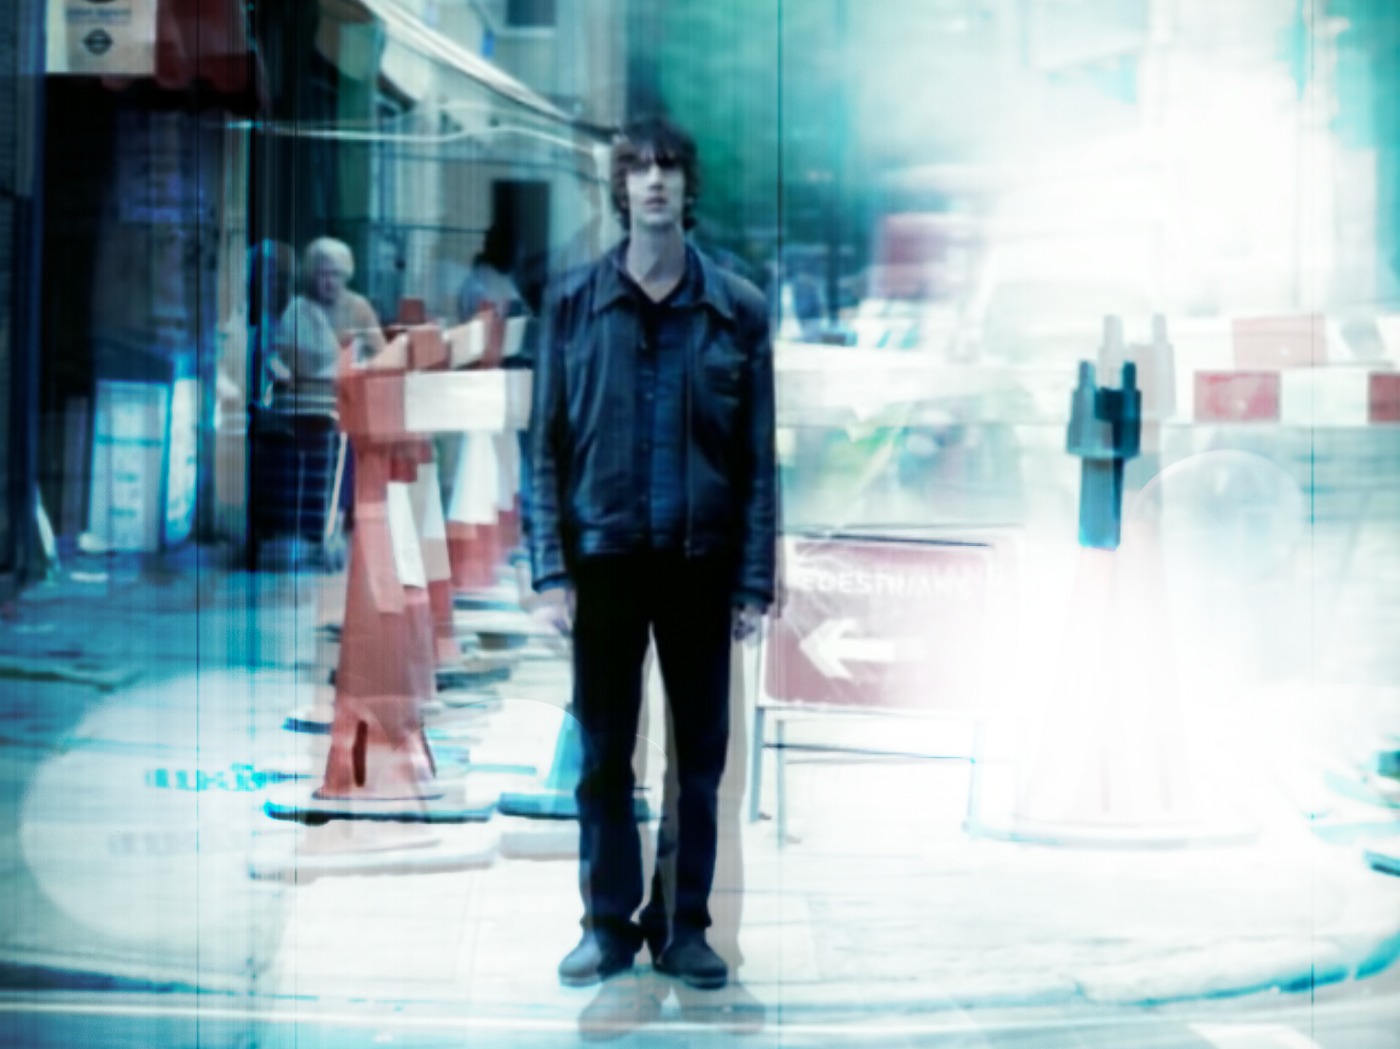 A stylized still from the music video, Bittersweet Symphony, by The Verve